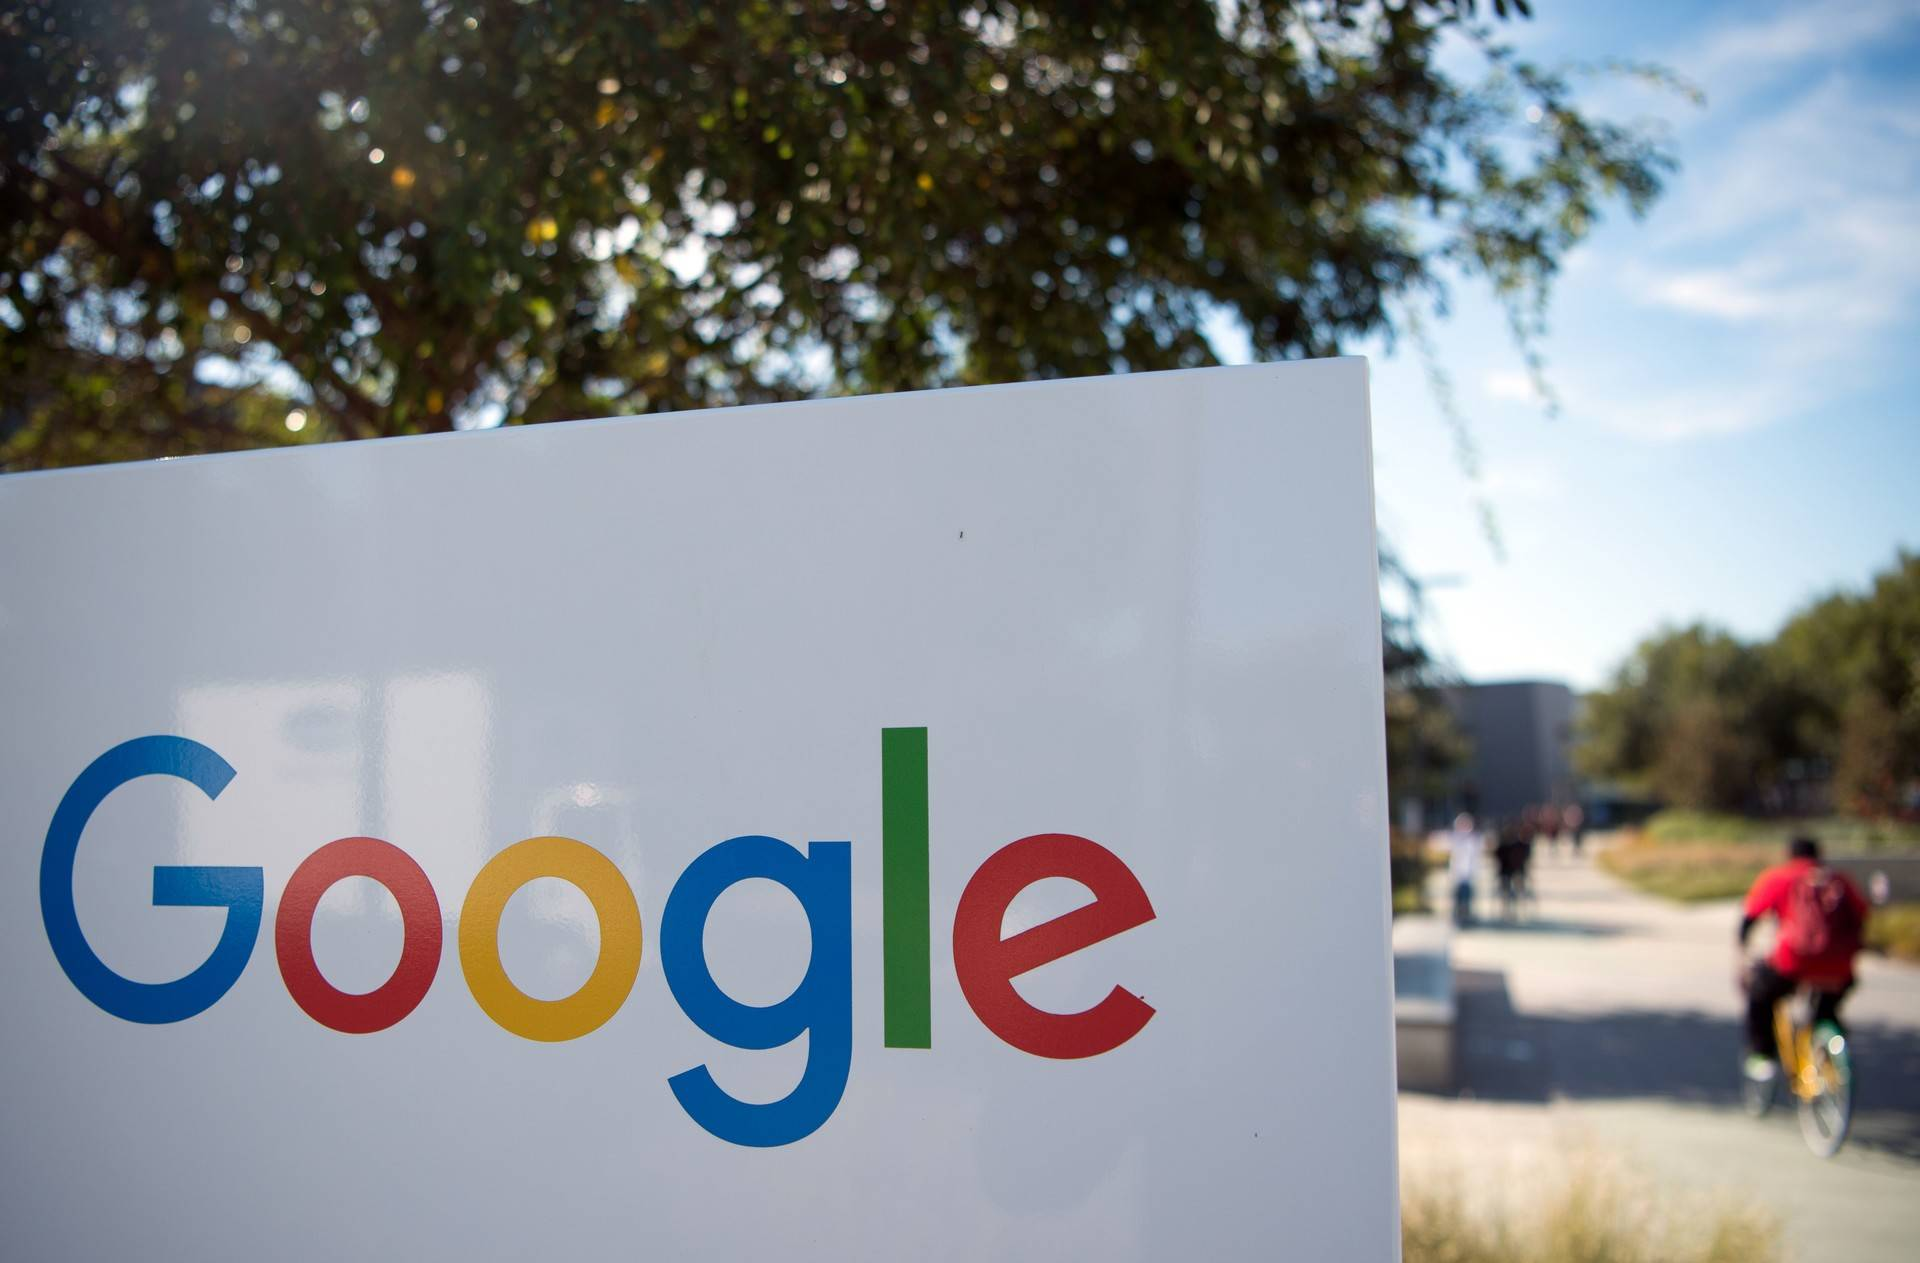 The Google sign and logo at the Googleplex in Menlo Park. JOSH EDELSON/AFP/Getty Images